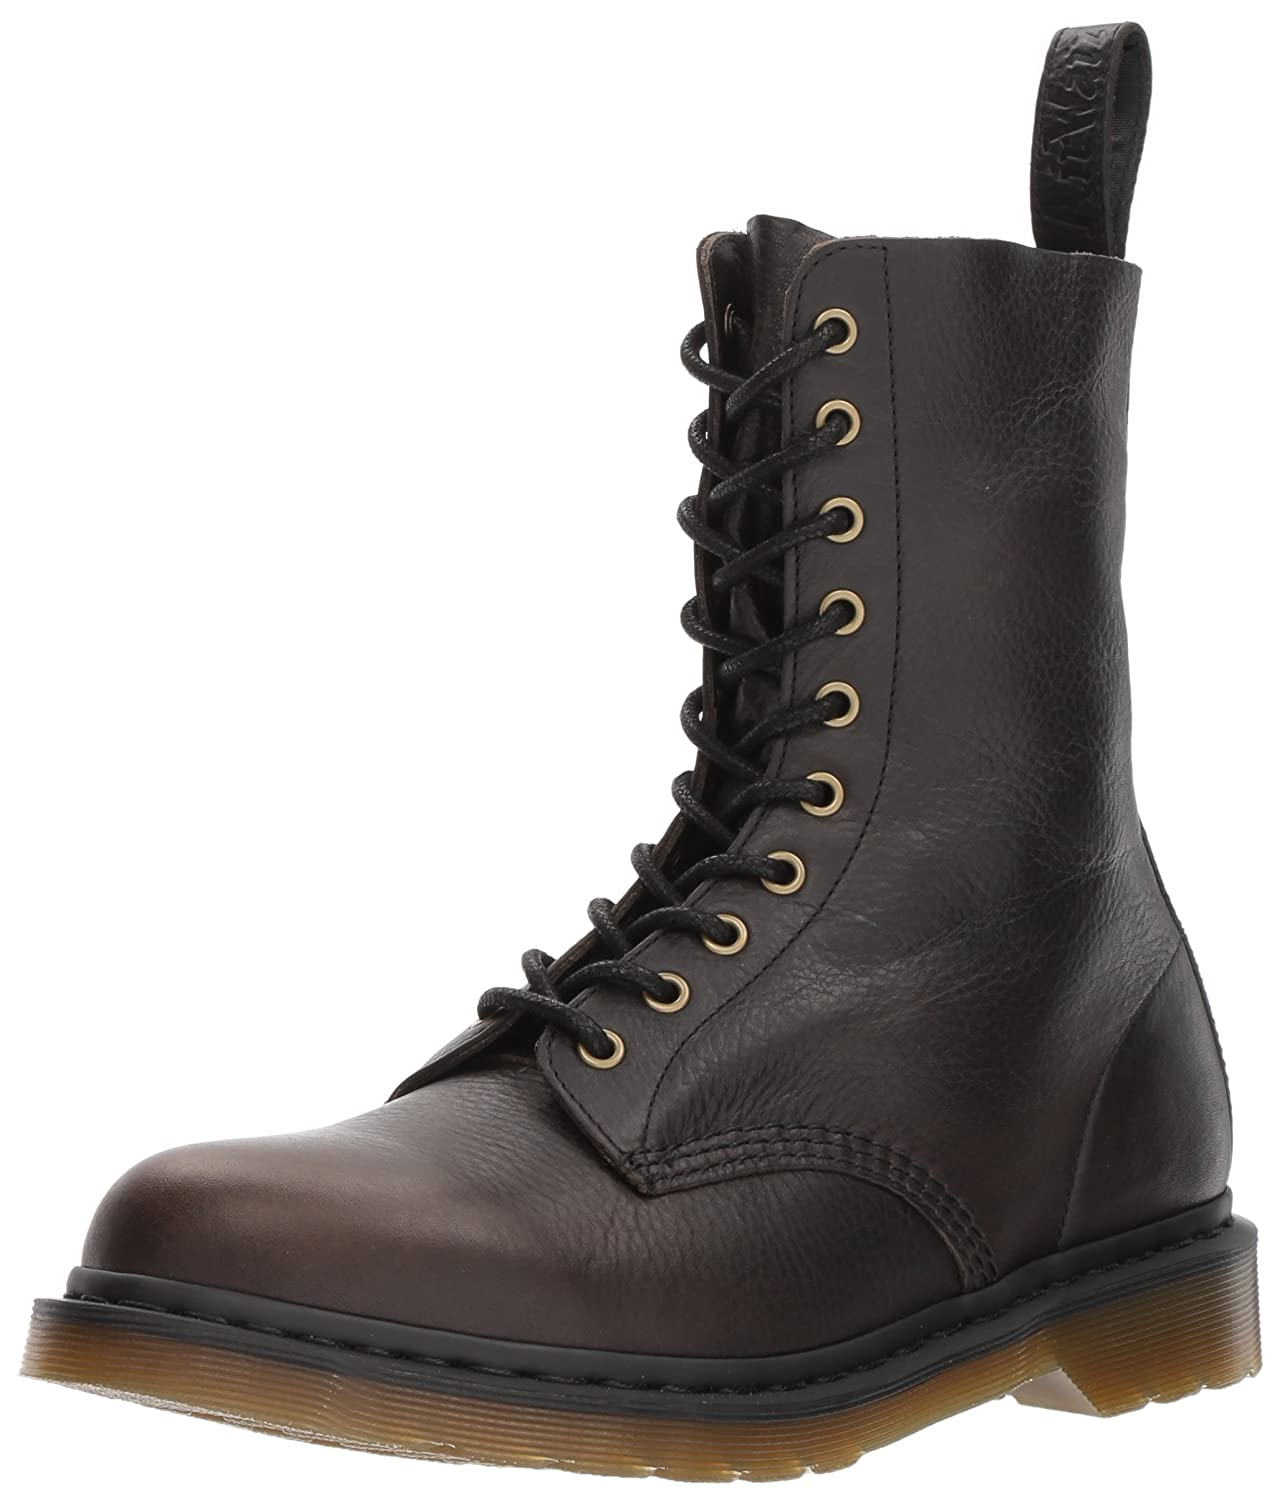 Dr. Martens 1490 Black Harvest Leather Fashion Boot B071WYK4X2 10 Medium UK (US Men's 11 US)|Black